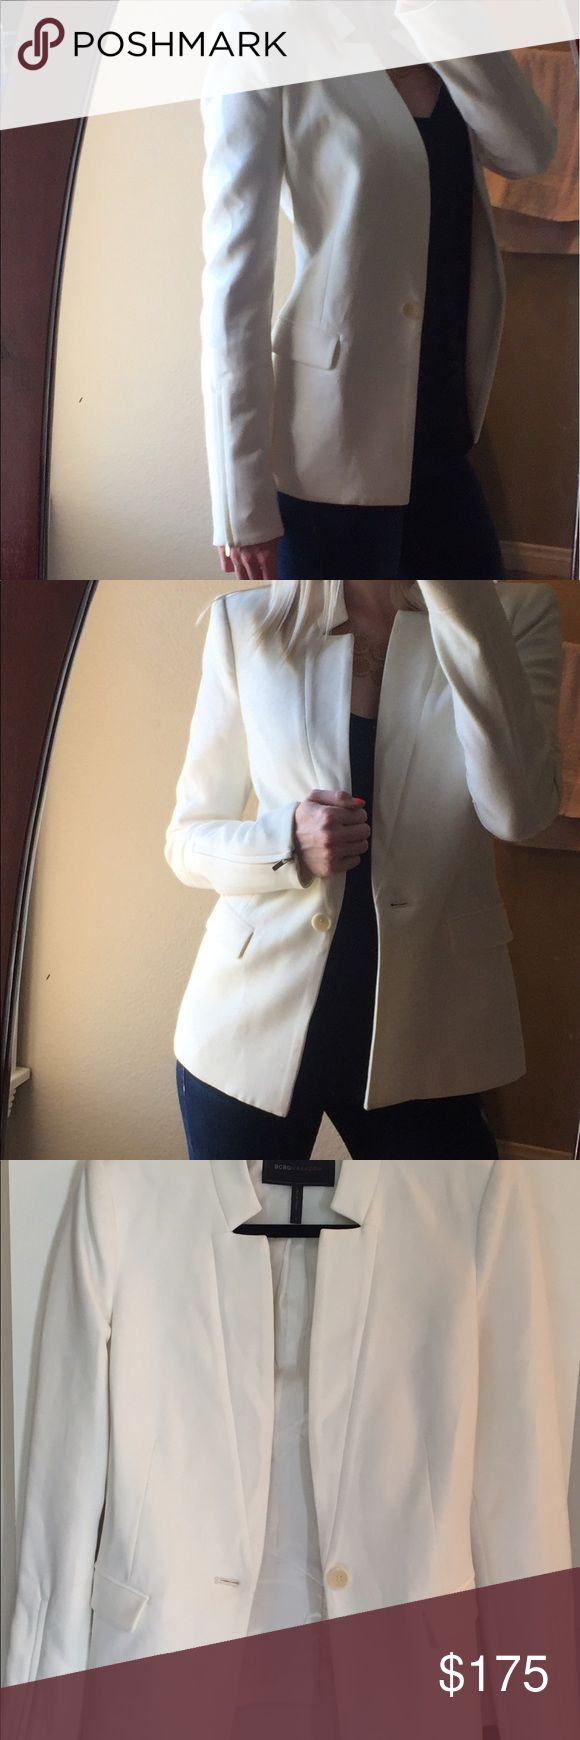 """BCBG Max Azria White Blazer Dressy white blazer from BCBG Max Azria! Worn once and in like new condition. Measurements: 17"""" shoulder to shoulder, 24"""" top to bottom in back and 26"""" top to bottom in front, 26"""" sleeve length BCBGMaxAzria Jackets & Coats Blazers"""